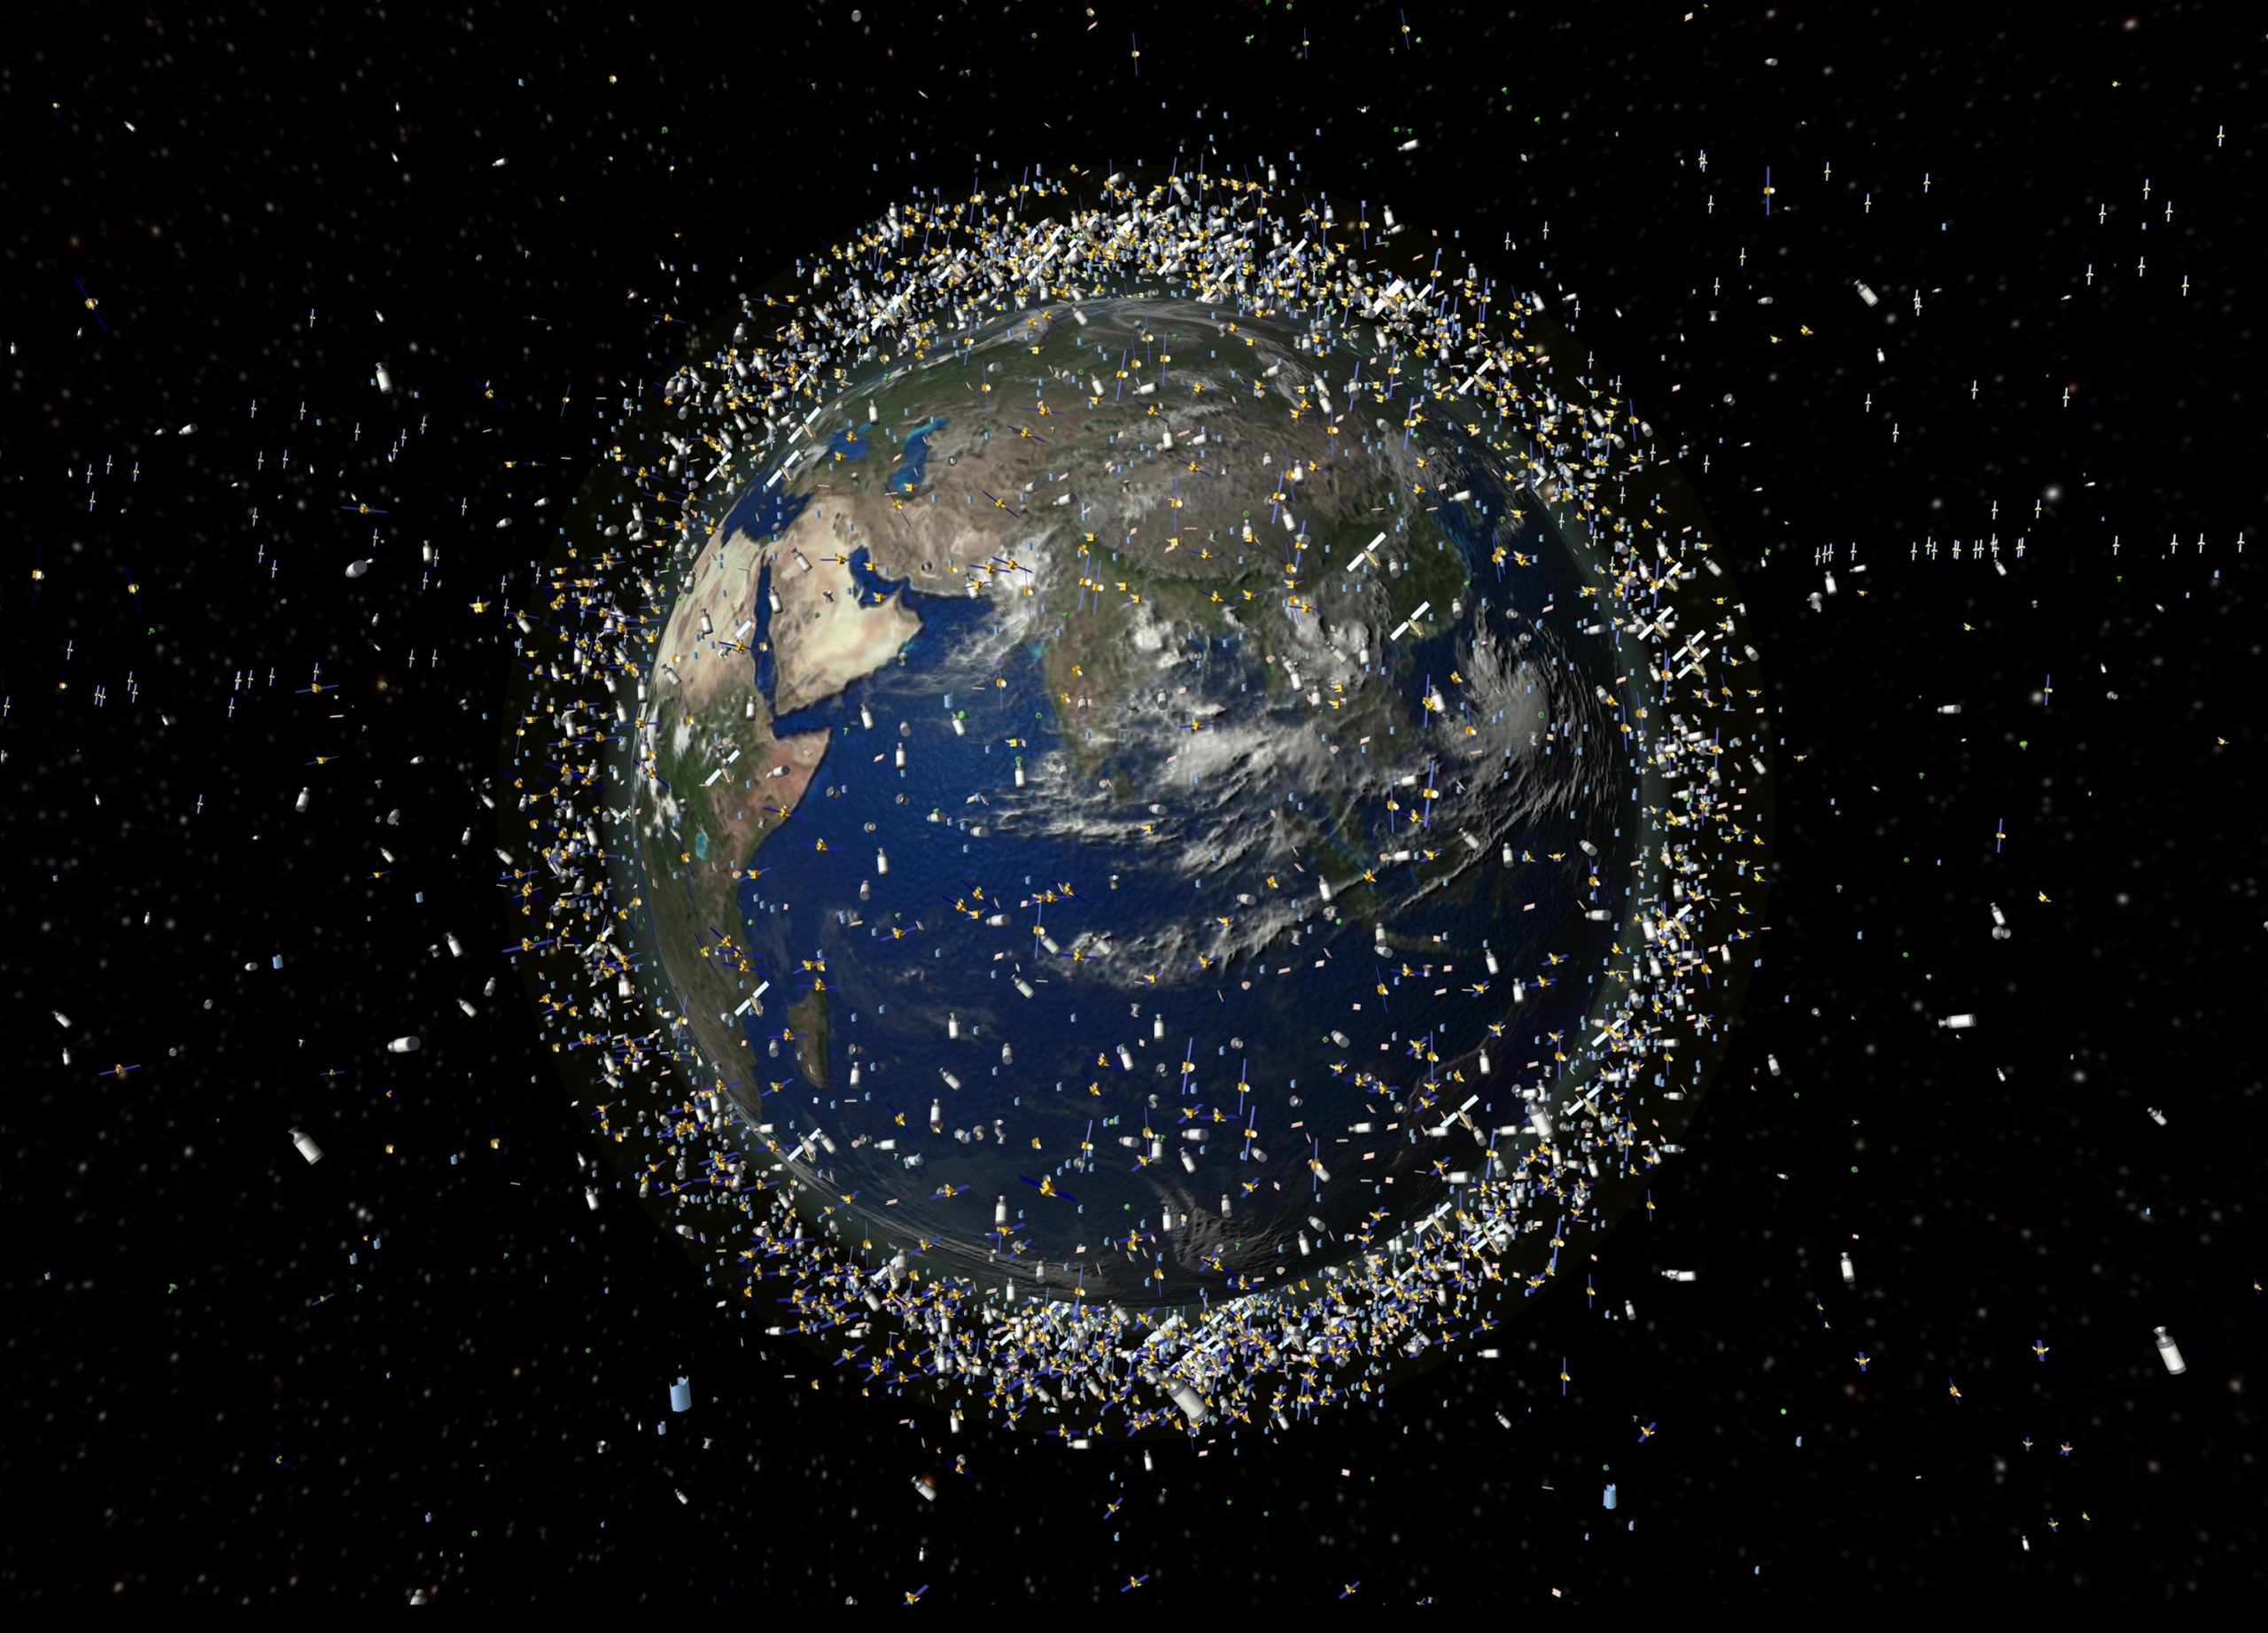 Astronomers Warn That Geosynchronous Orbital Debris Threatens Satellites, Not Being Monitored Closely Enough - SciTechDaily